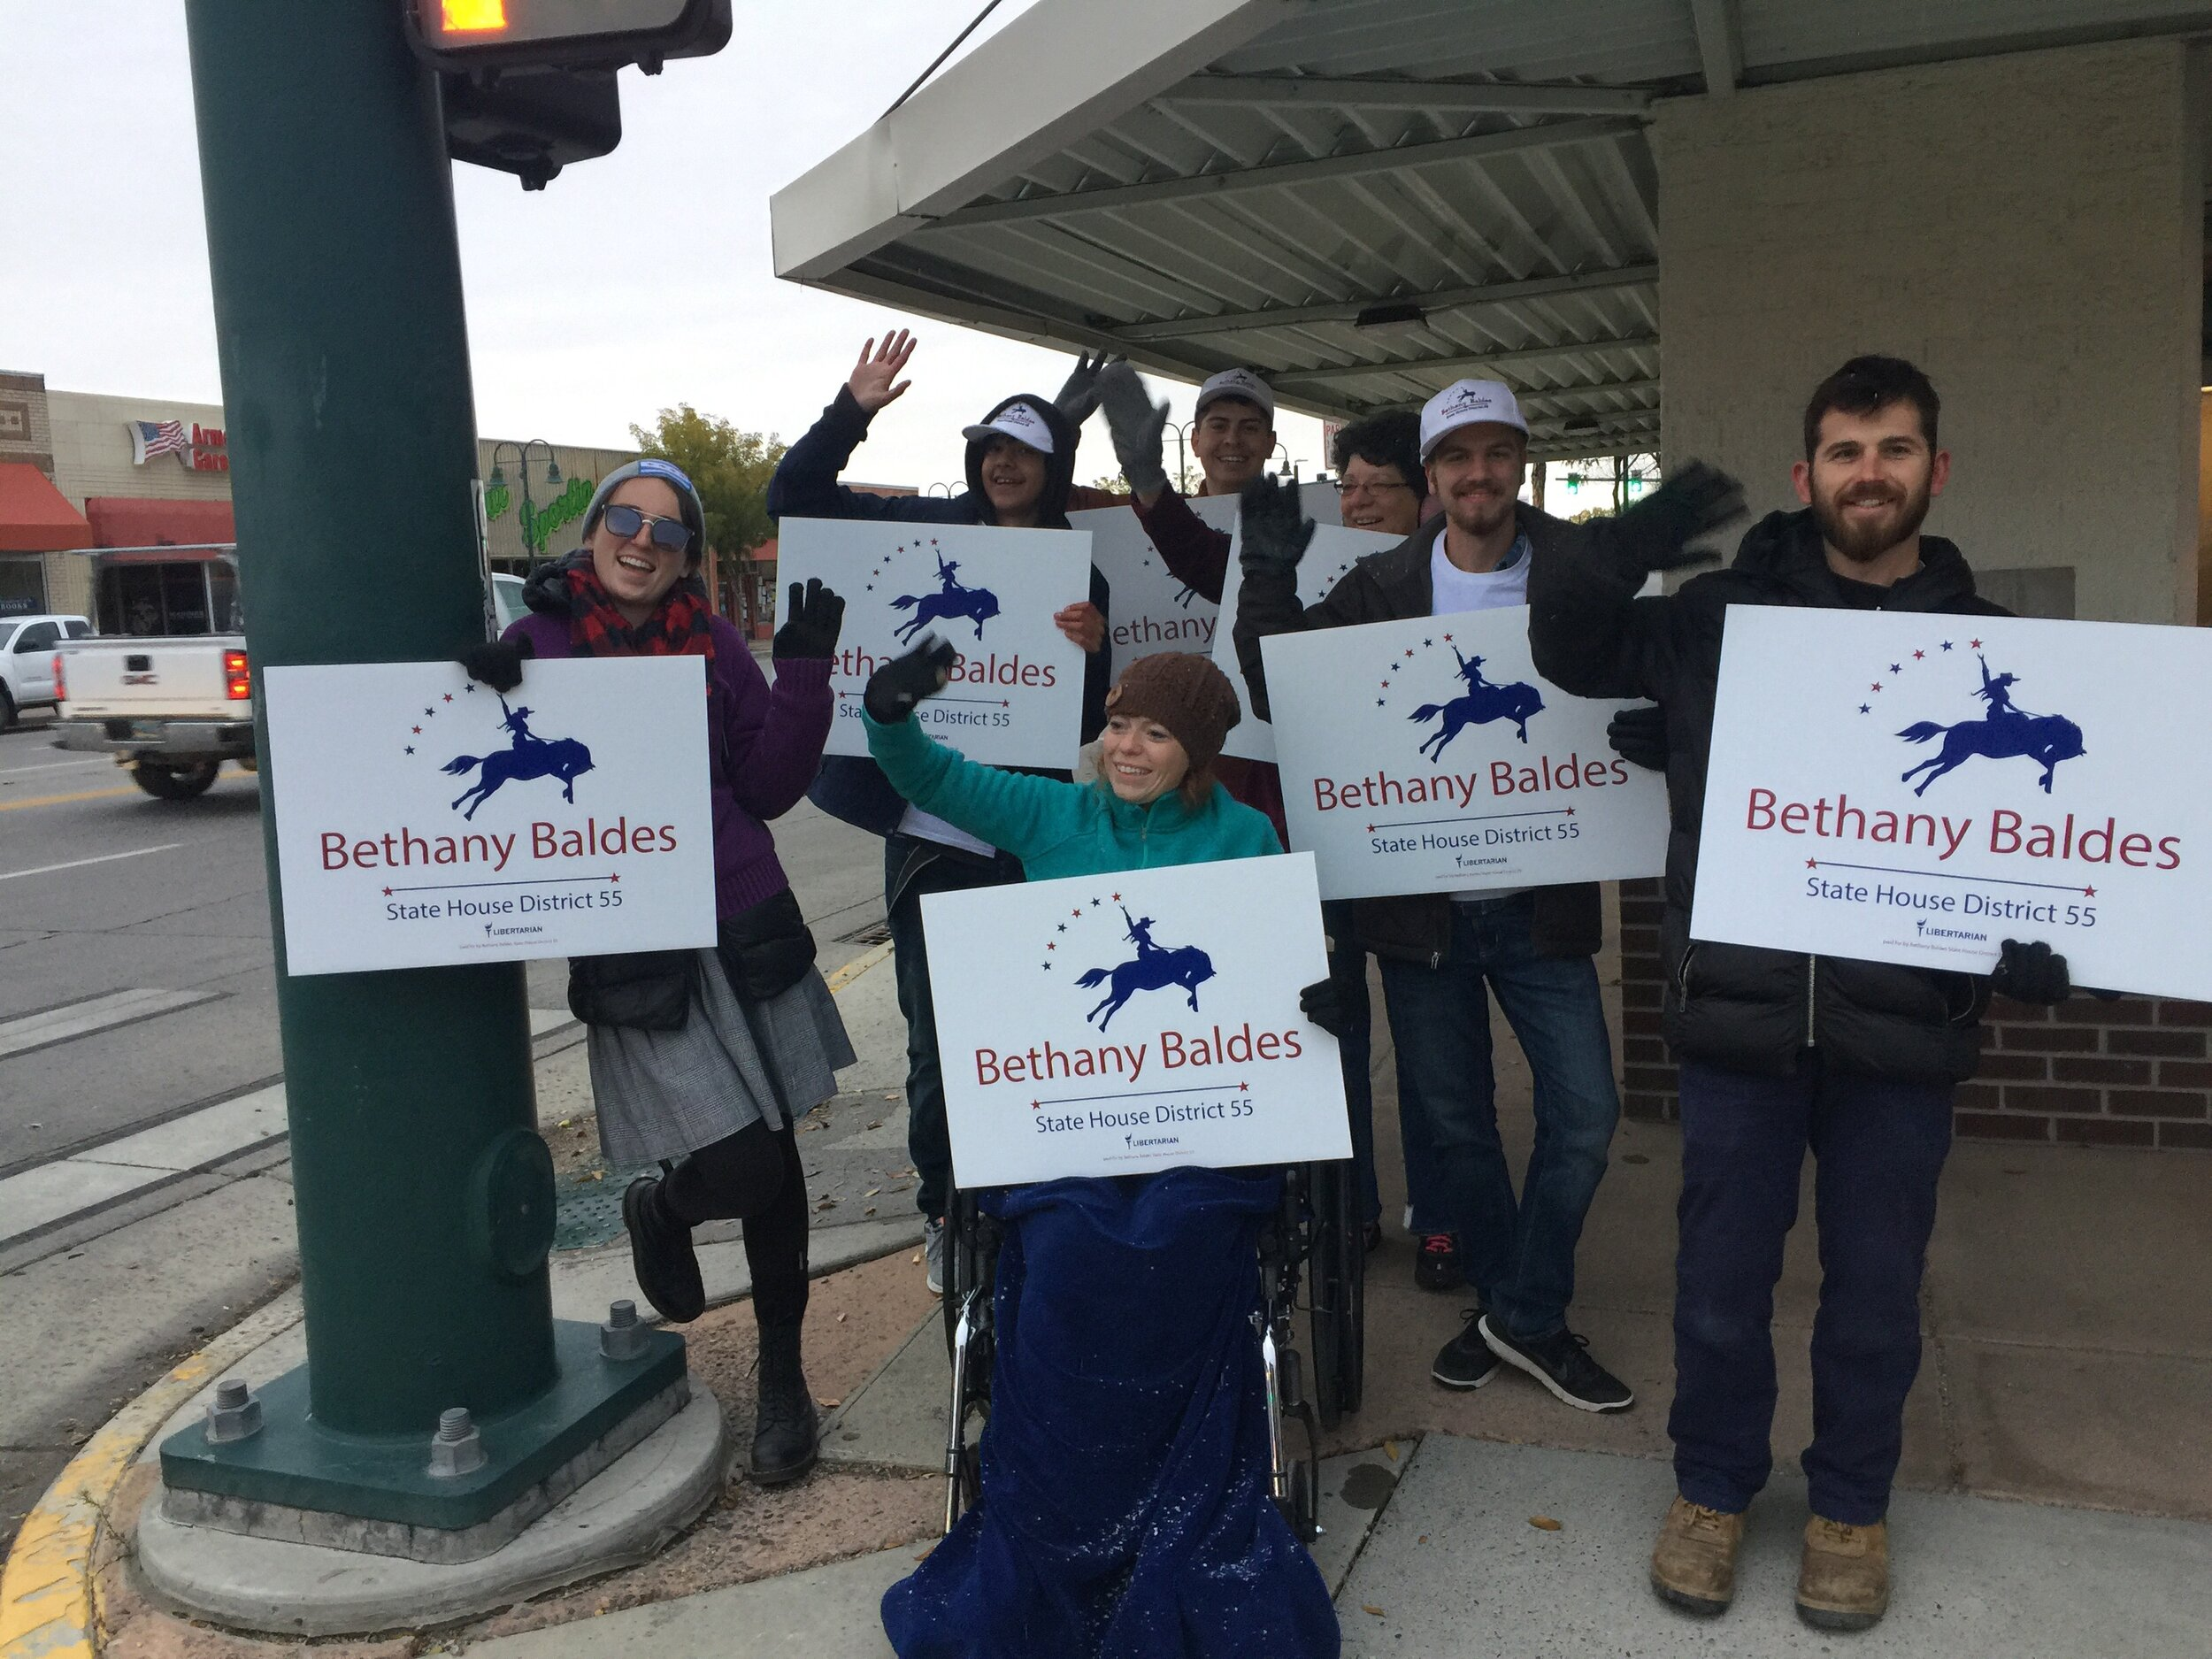 2019 Canvassing - The fall is upon us that means it is time to canvass! LFP will be sending canvassers out to select district for the month of October. If you are interested in applying to become a canvasser, click on the link and let us know. If you want to sponsor a canvasser and help get Libertarian elected you can donate HERE